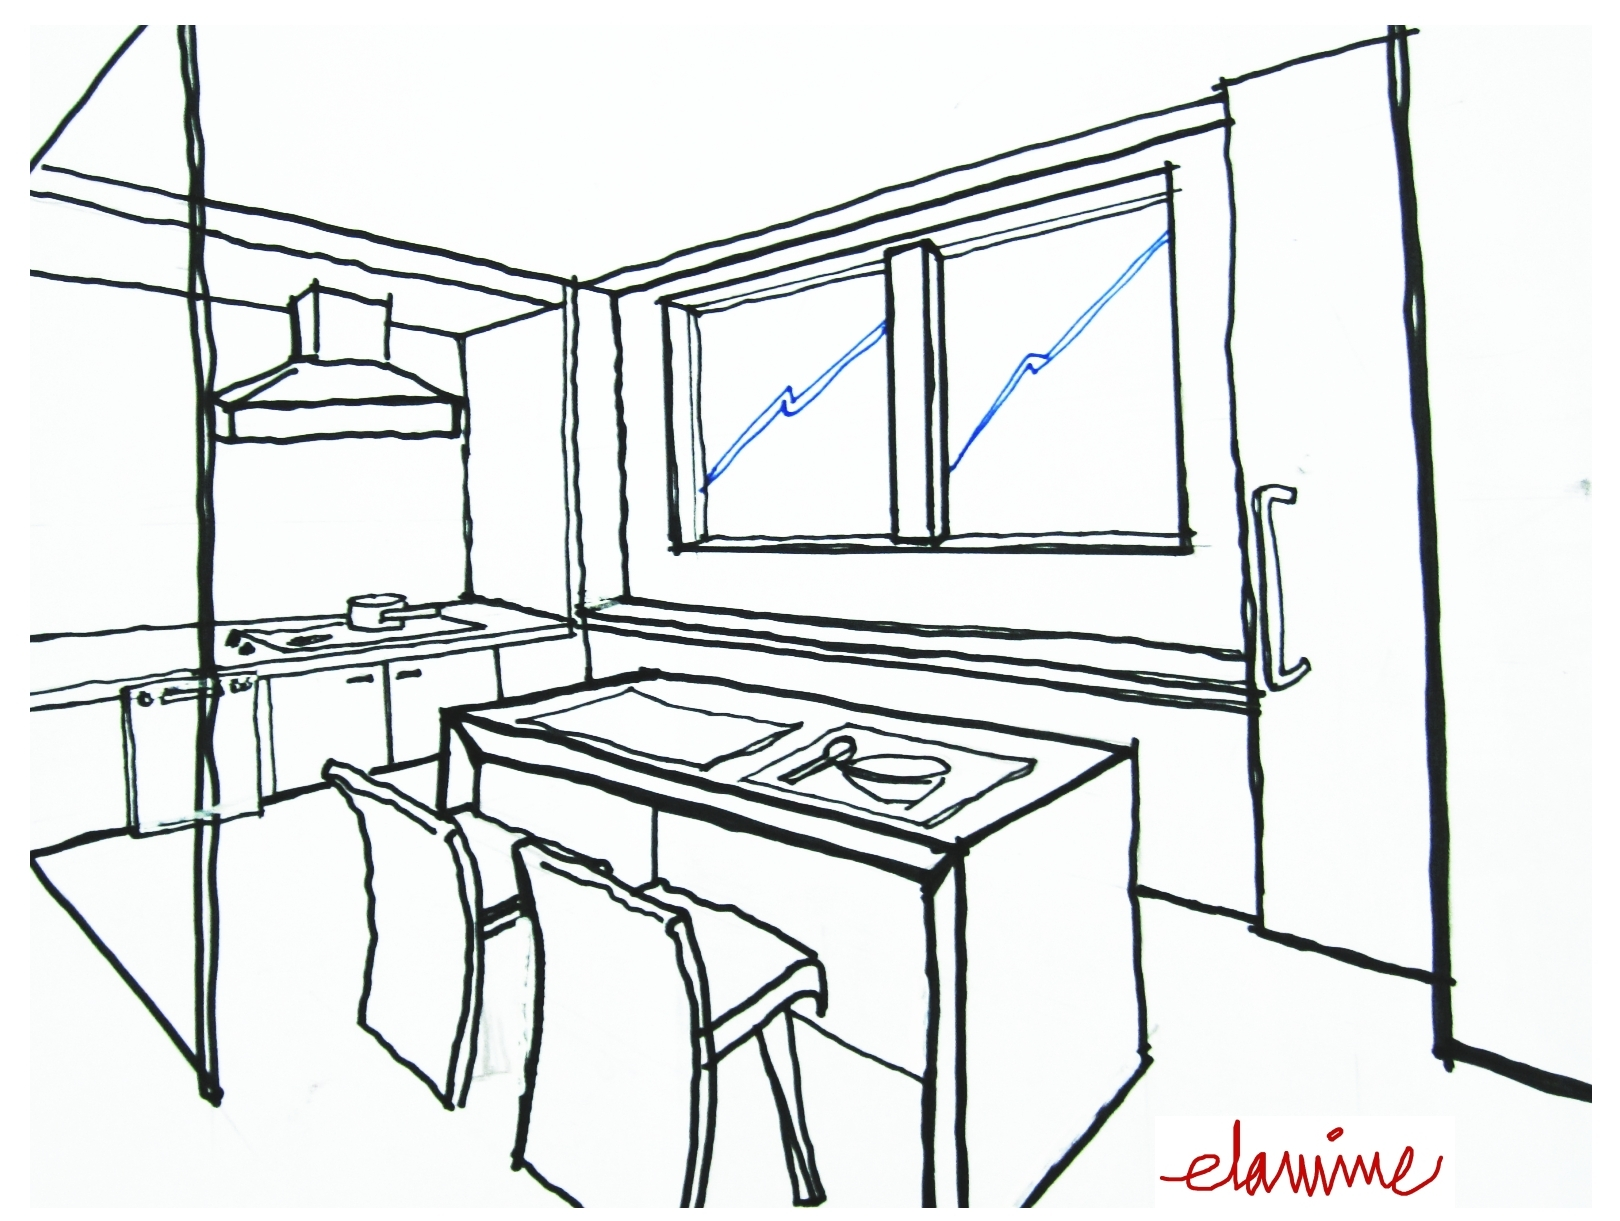 Kitchen Drawing at GetDrawings.com | Free for personal use Kitchen ...